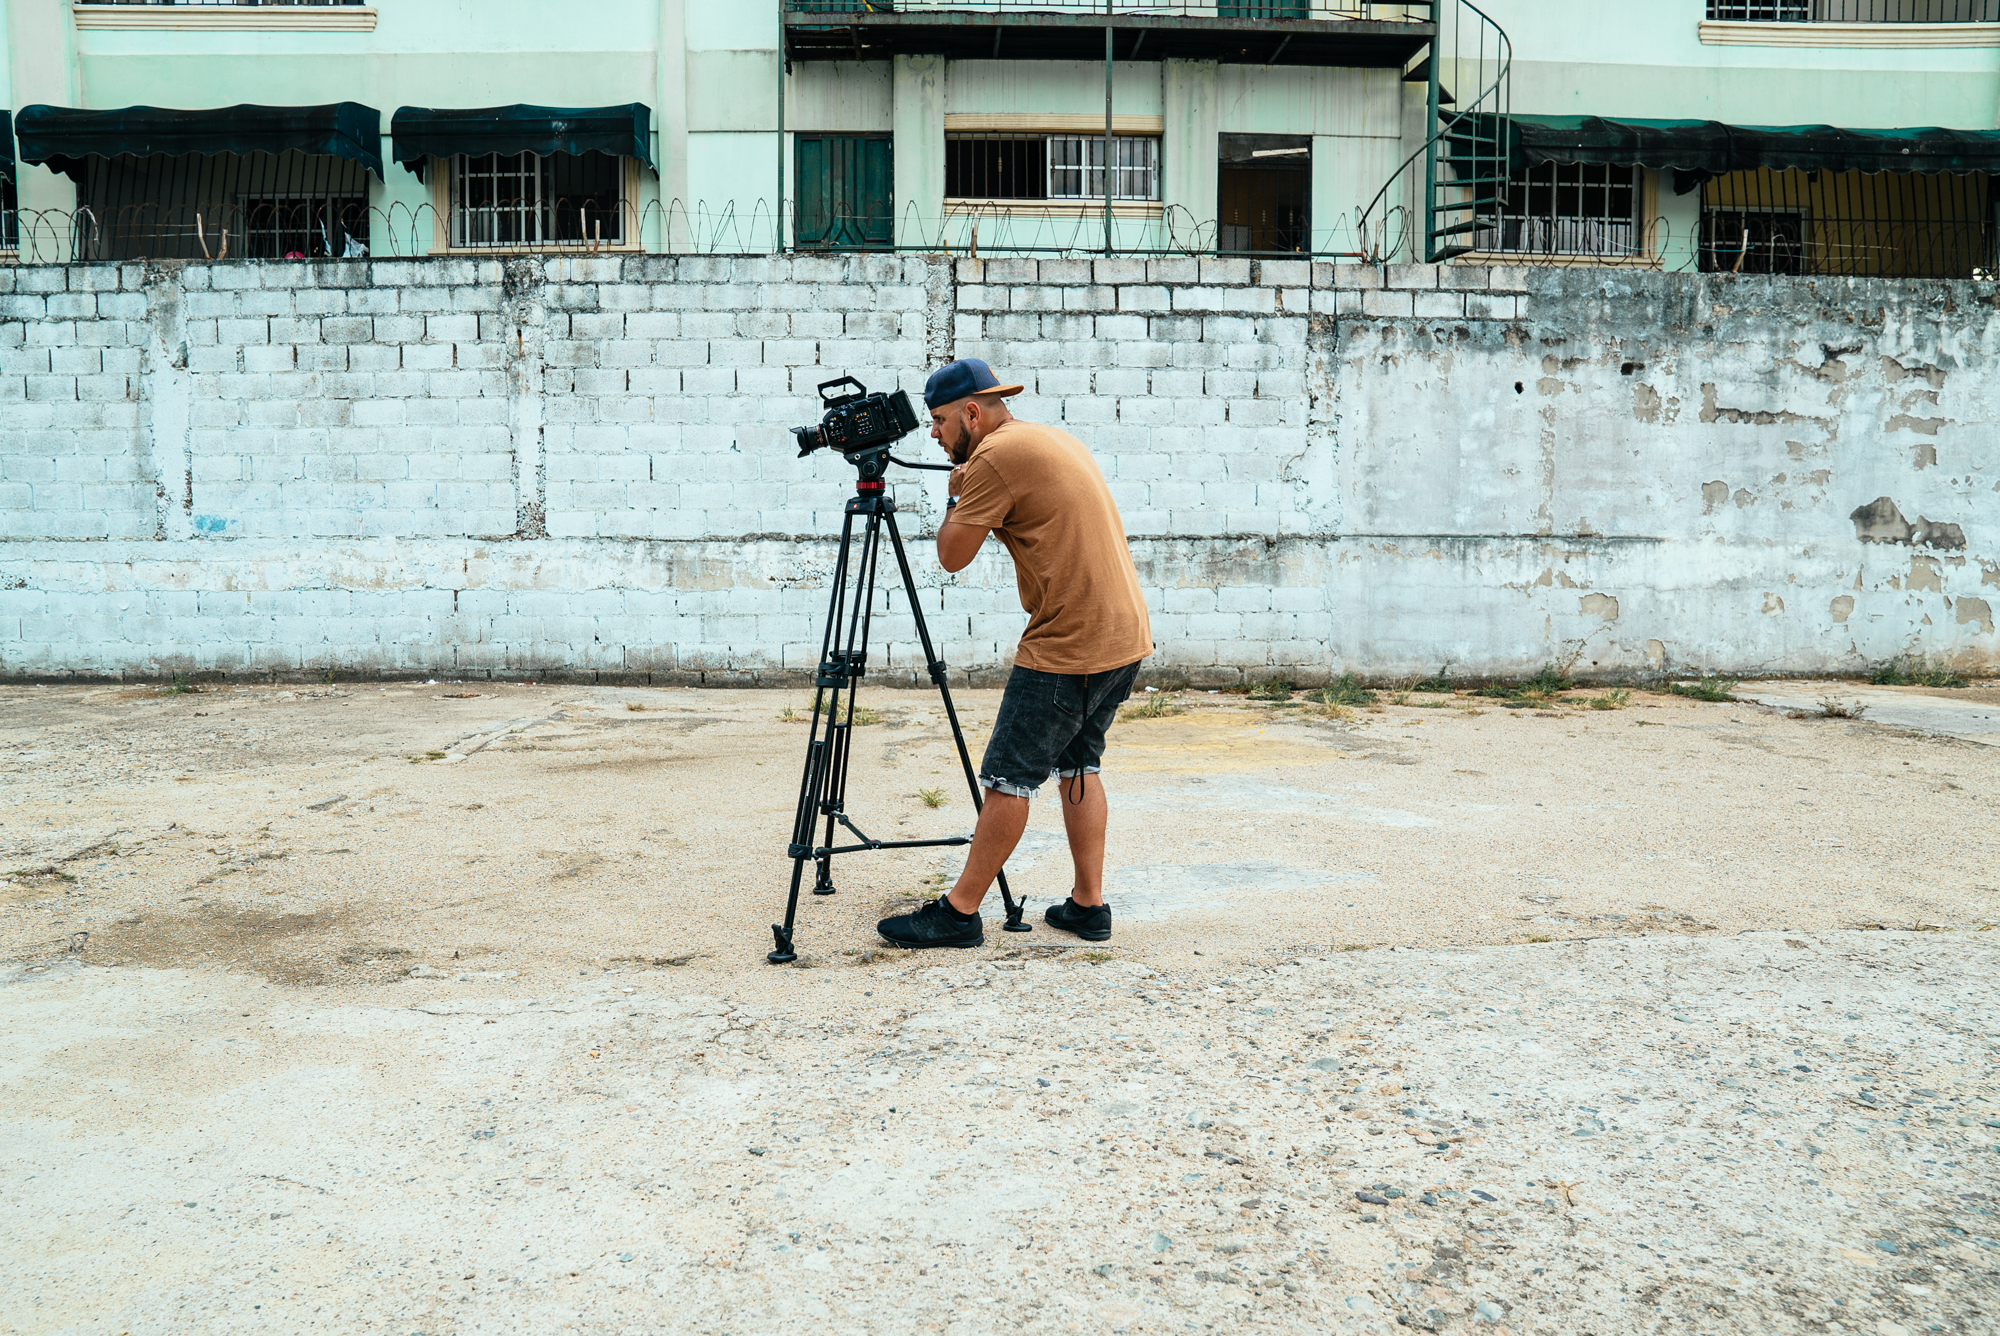 Day 2 // Esteban locks in the location and sets up to interview Carlos & Rogers about the need for God's Word in Streetlights form for this generation in the Dominican Republic and Latin America.